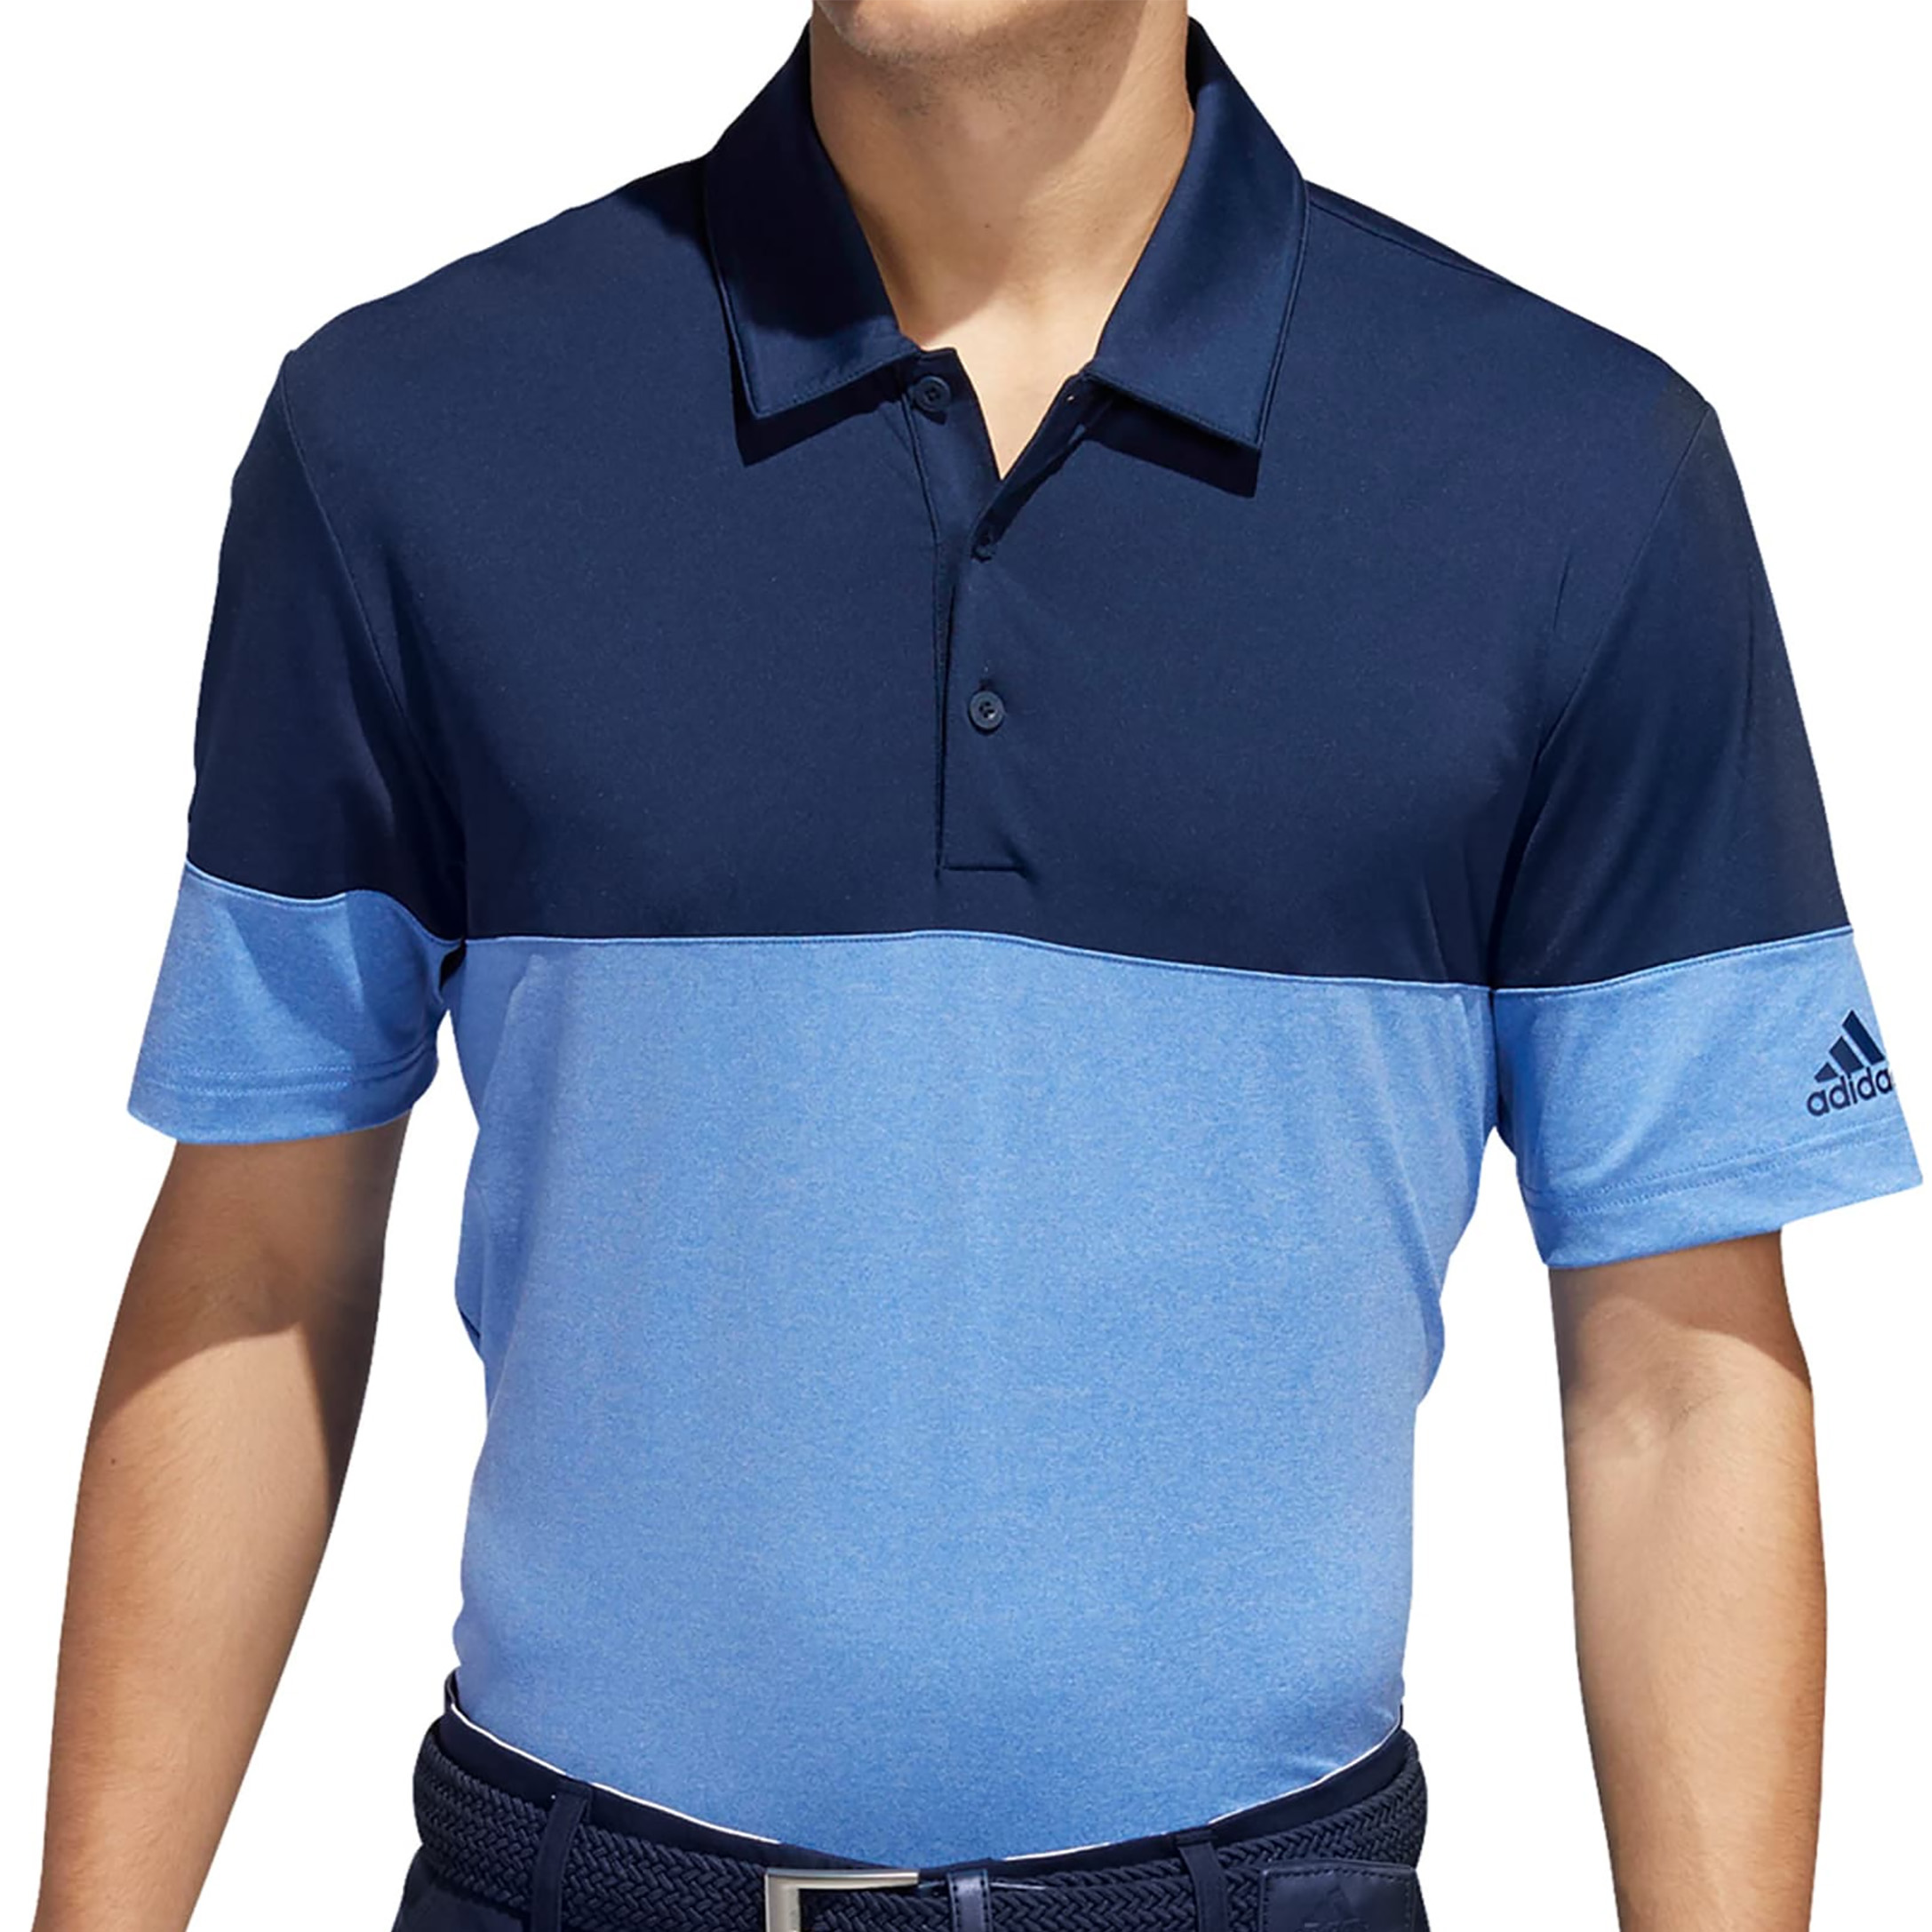 Adidas-Golf-Men-039-s-Ultimate-2-0-All-Day-Polo-Shirt-New thumbnail 9